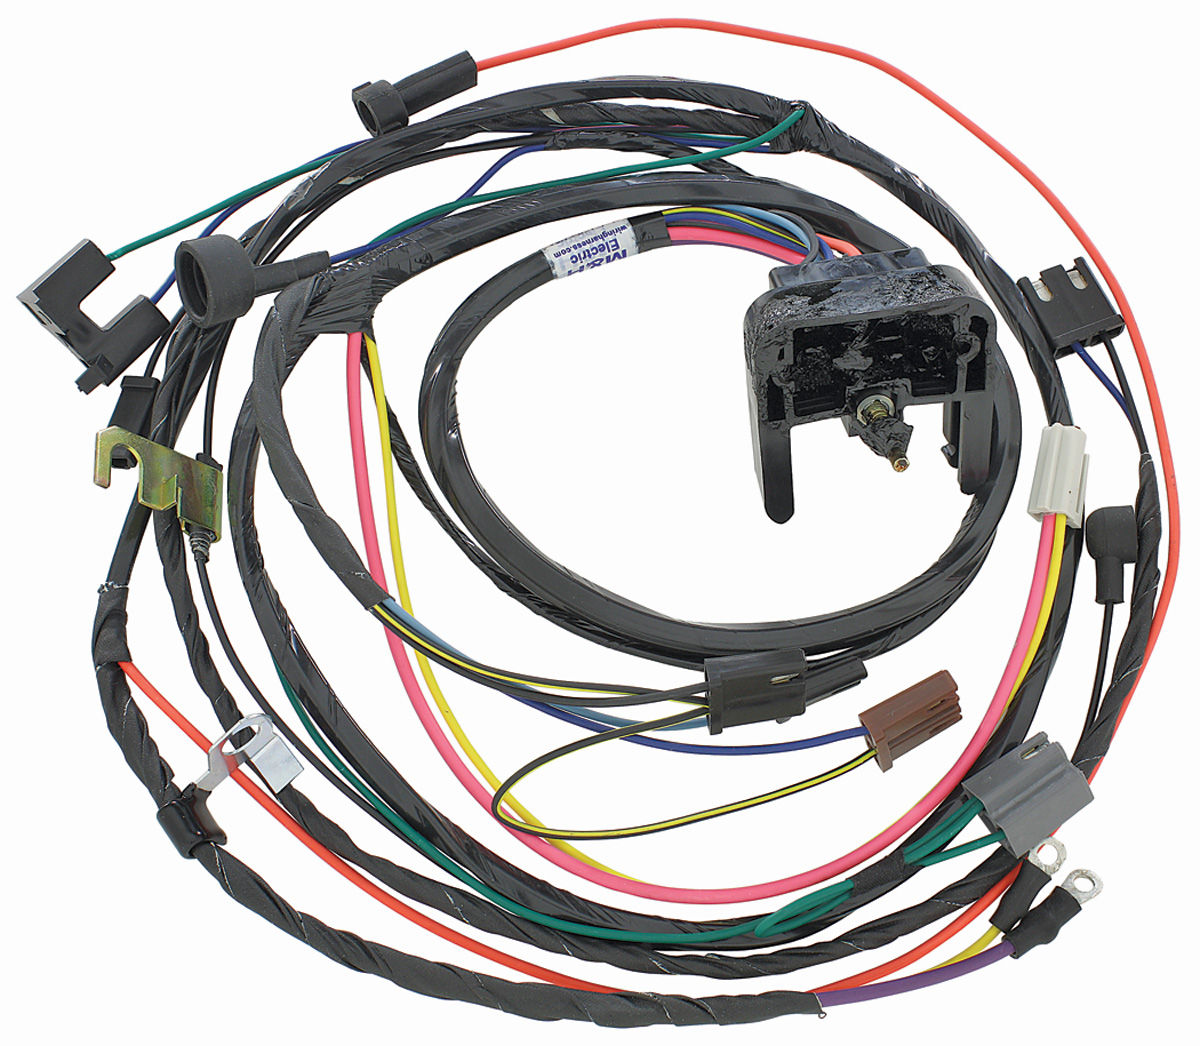 Chevelle Wiring Diagram Lights on 1970 chevelle carburetor, 1967 chevelle horn diagram, 1970 chevelle cowl induction relay location, 1970 chevelle transmission, 1970 chevelle crankshaft, 1970 chevelle lights, 1970 chevelle fuel gauge wiring, 1970 chevelle tires, 1970 chevelle air conditioning, 1970 chevelle wiring blueprints, 1970 chevelle alternator, 1970 chevelle clock, 1970 chevelle oil sending unit, 1970 chevelle neutral safety switch, 1970 chevelle air cleaner, 1970 chevelle schematics, 1970 chevelle wiring harness, 67 chevelle horn diagram, 1970 chevelle ss fender emblem location, chevelle ac diagram,